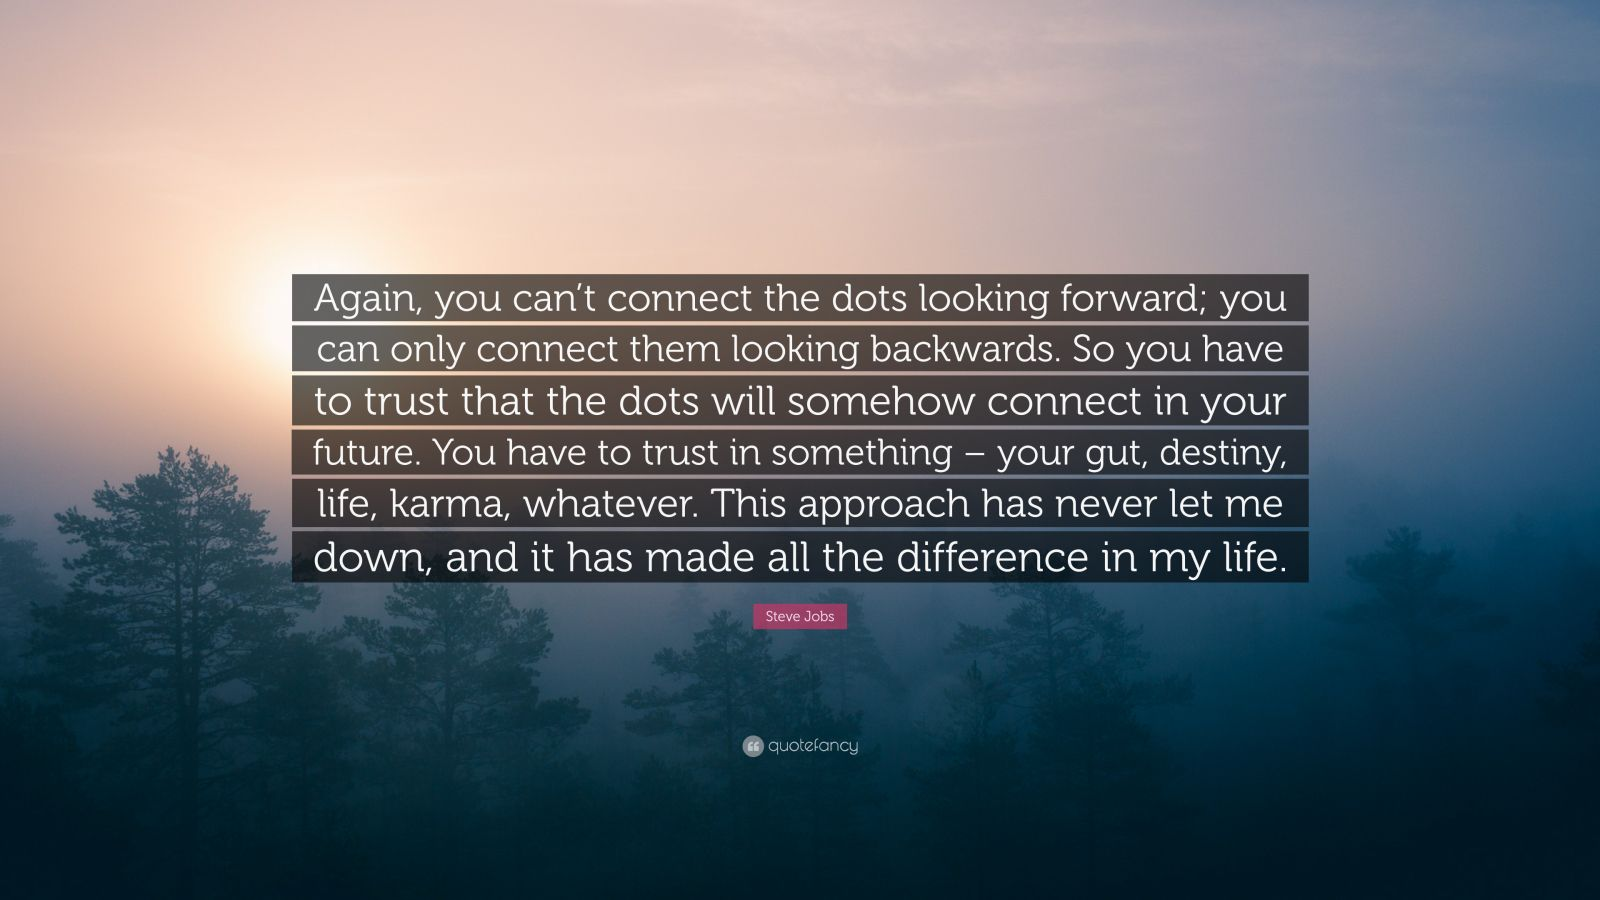 Elon Musk Quotes Wallpapers Steve Jobs Quote Again You Can T Connect The Dots